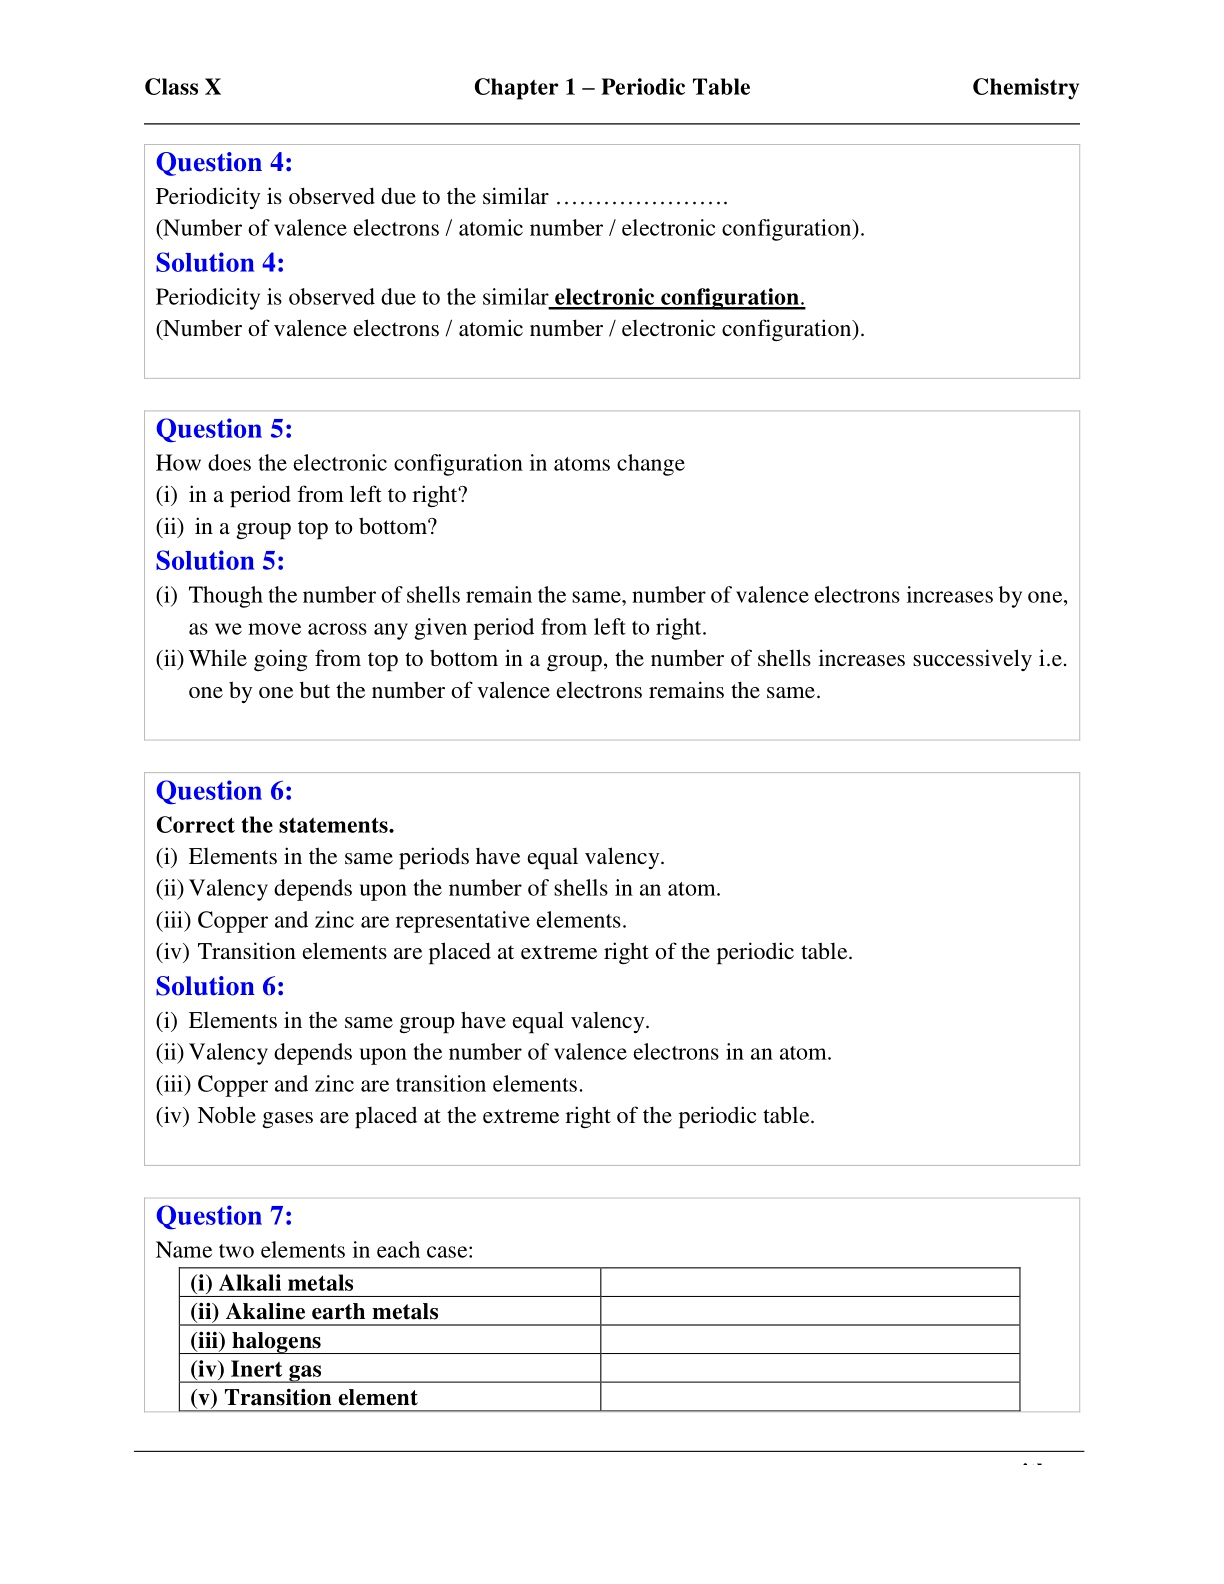 Periodic table class 11 notes pdf elcho table class 10 icse chapter 1 periodic table solutions credit to httpsicsehubspot201706concise chemistry class 10 icse chapterml urtaz Image collections